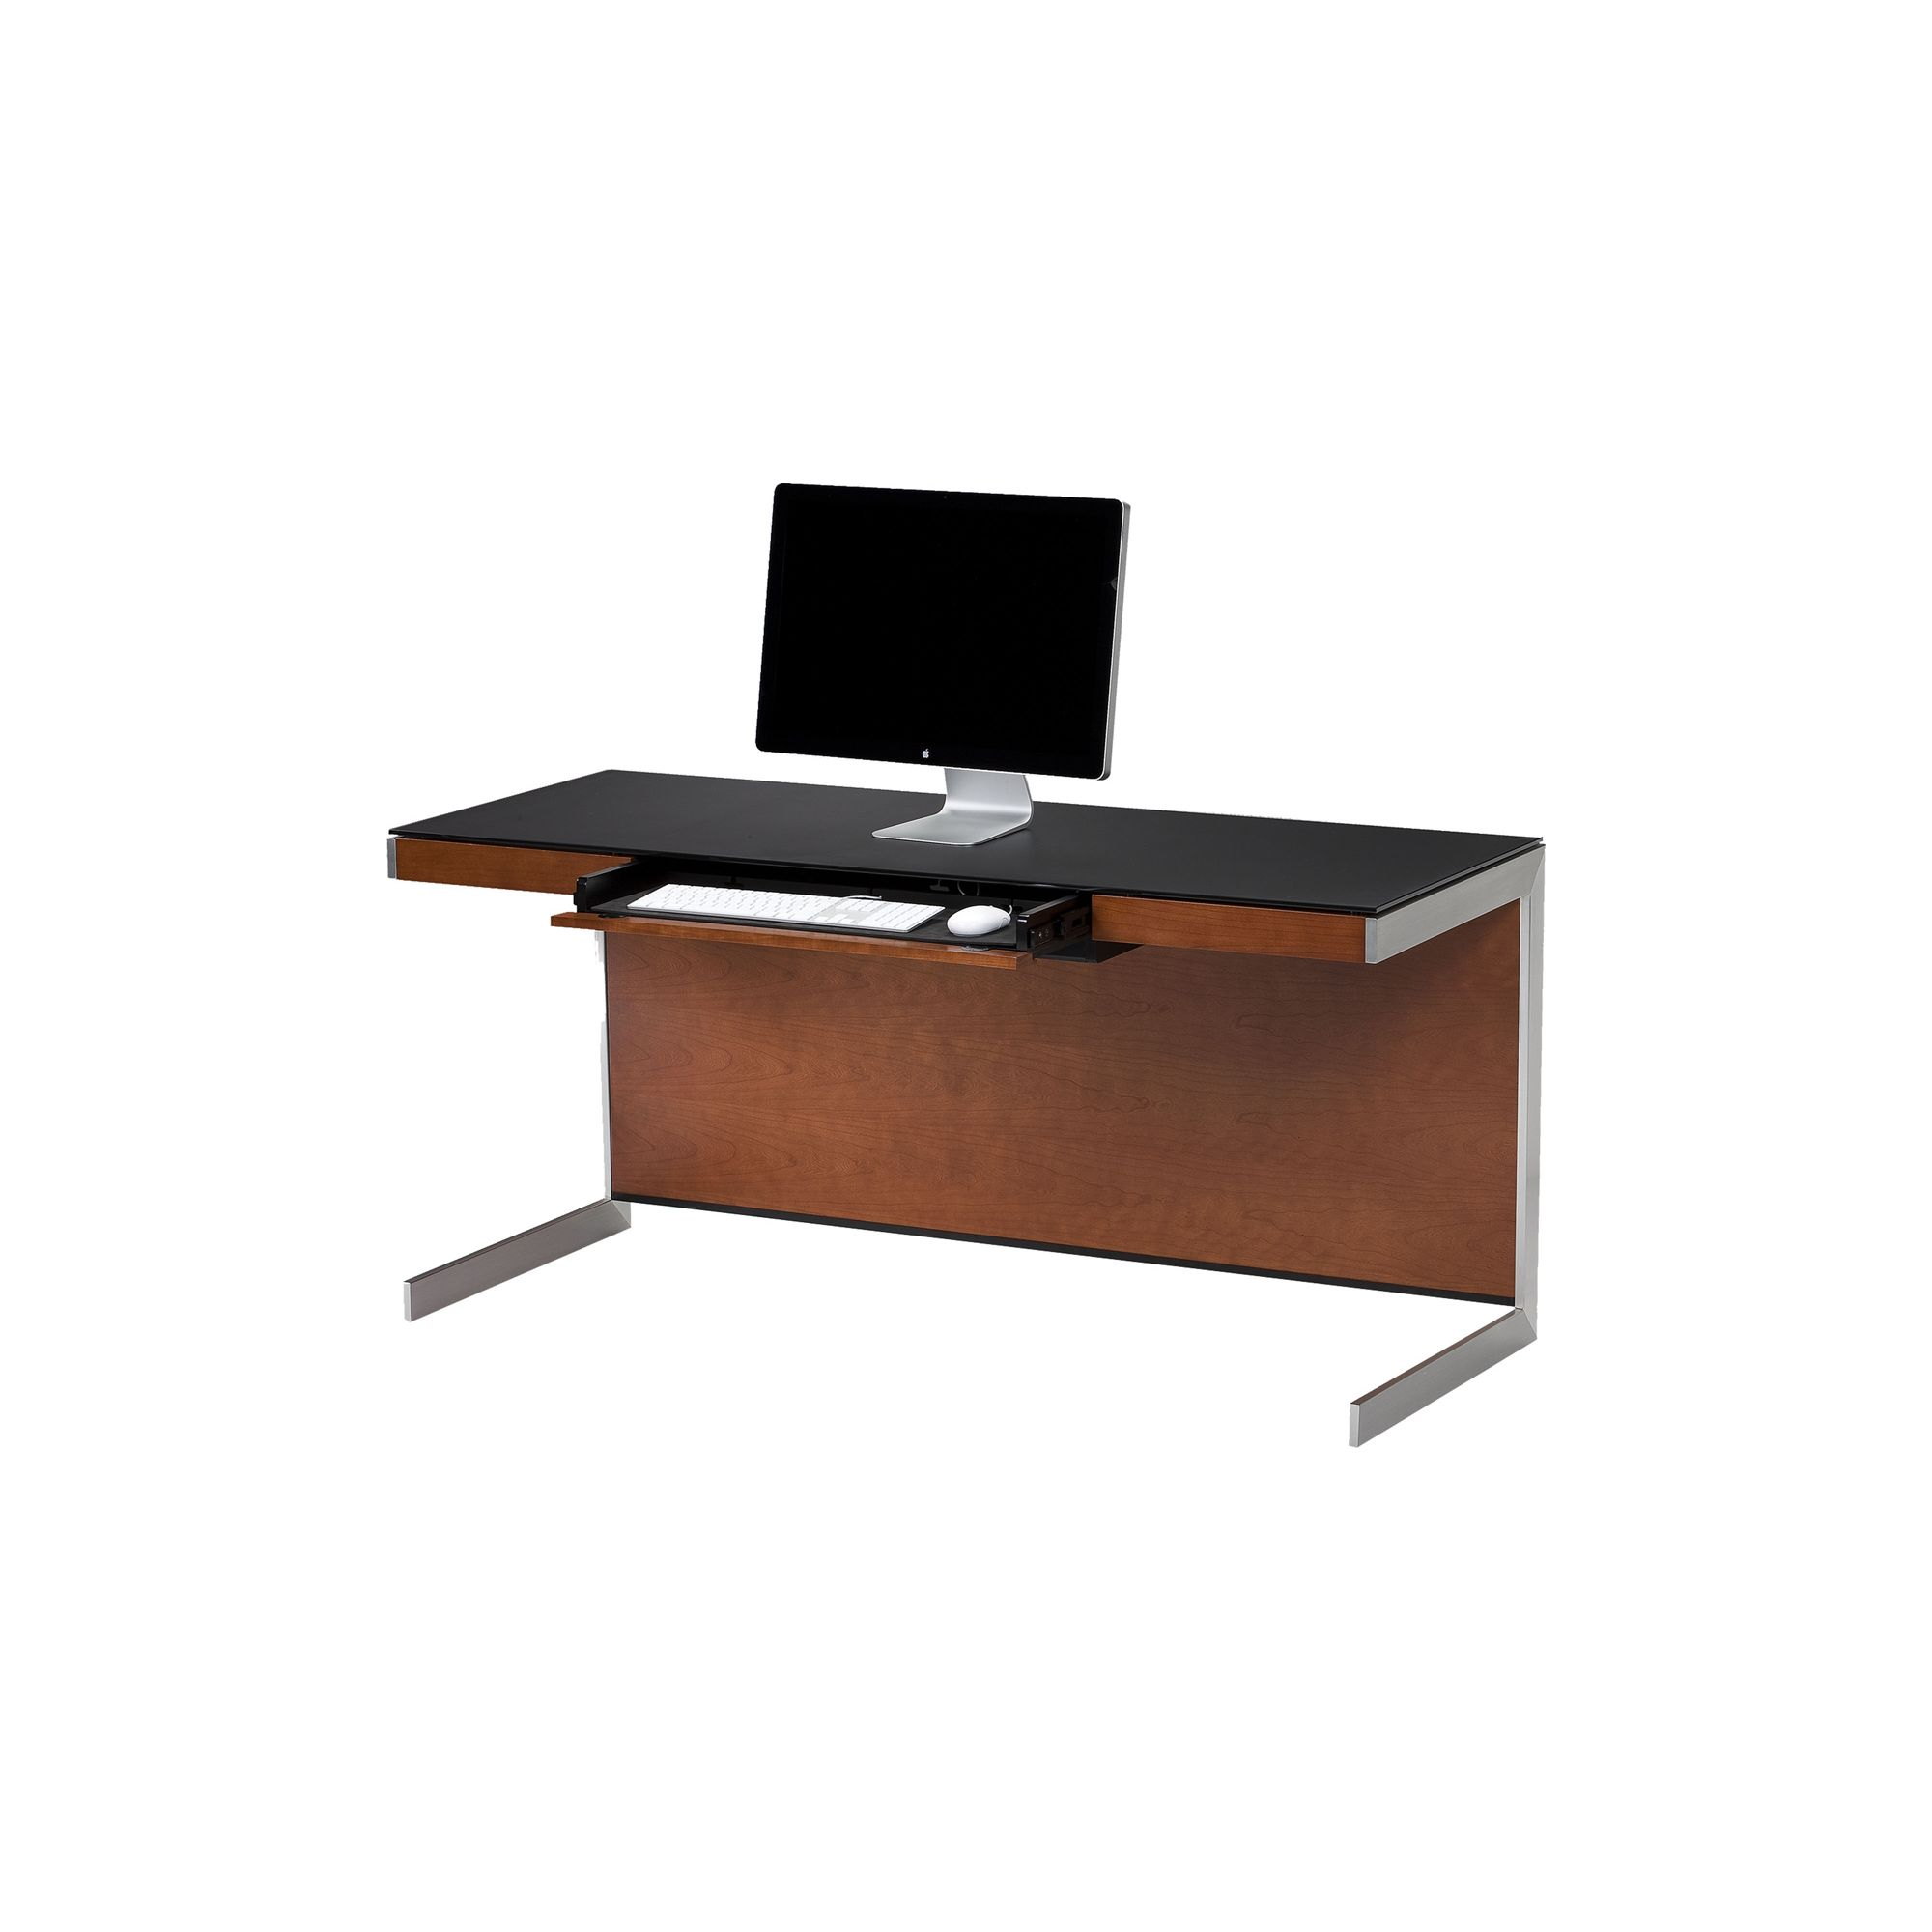 Sequel 6001 Desk in Natural Stained Cherry with Glass Top at Tesco Direct